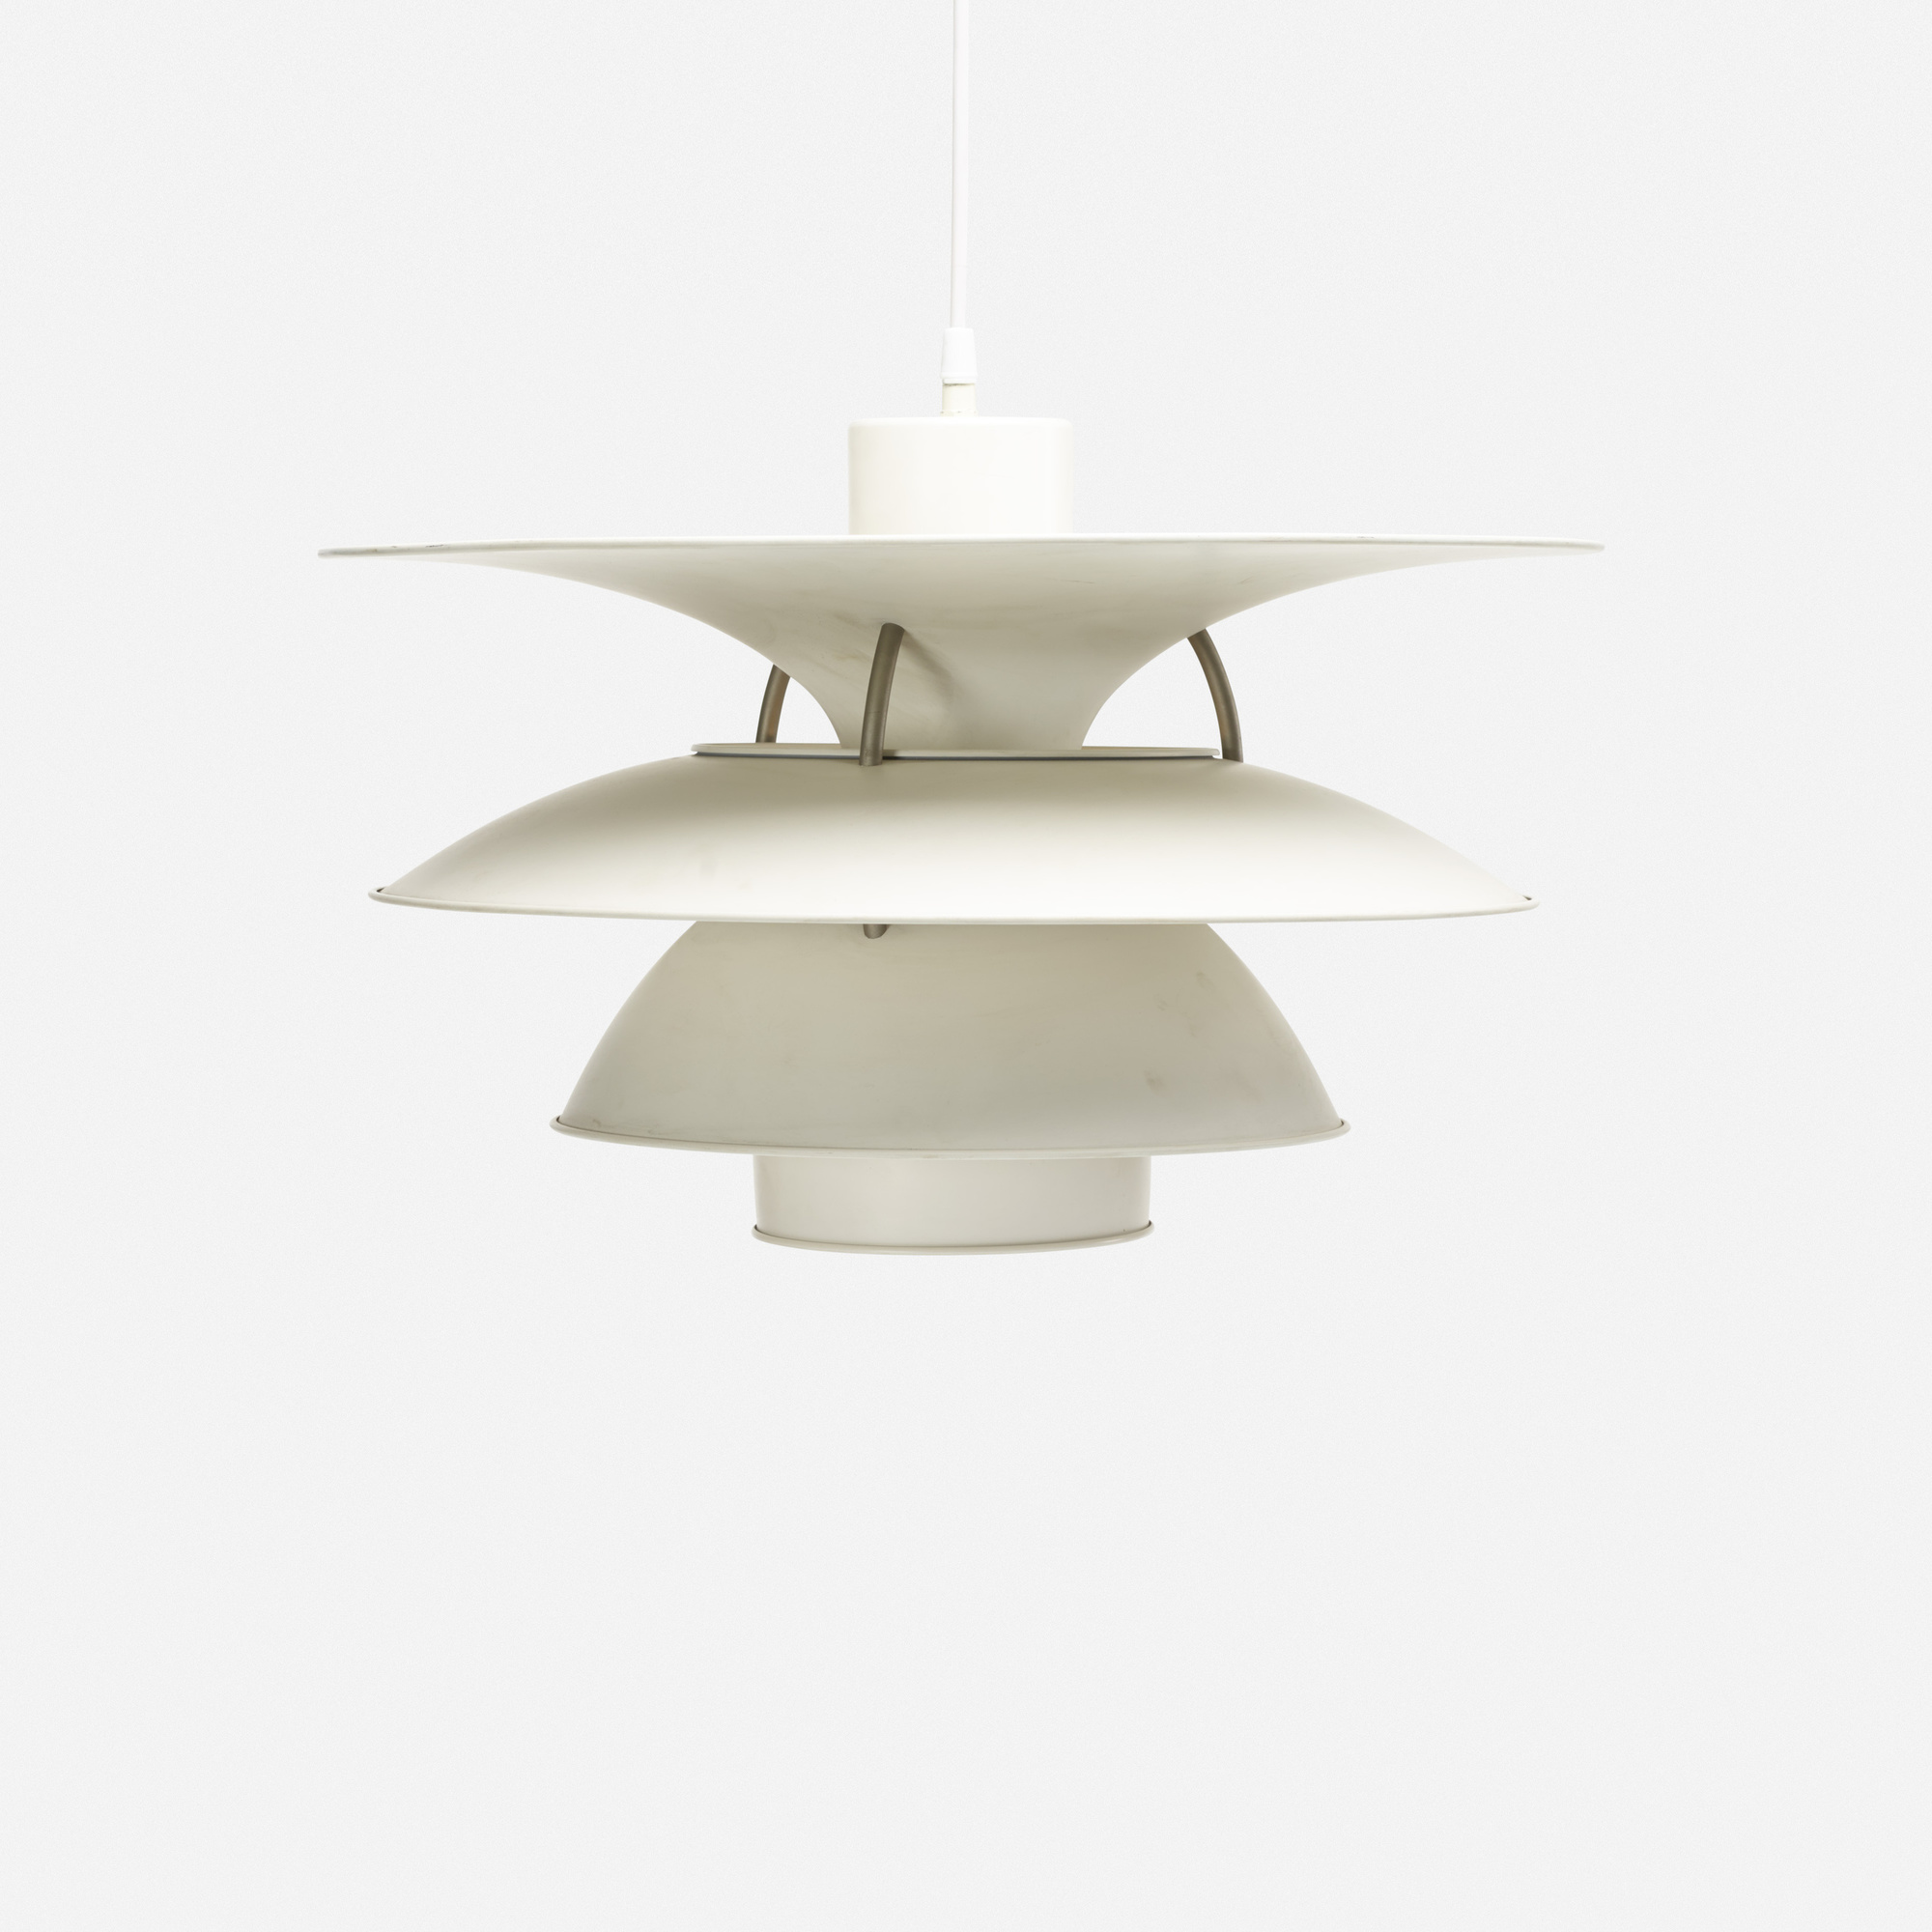 138: Poul Henningsen / PH 5/4.5 pendant lamp (1 of 1)